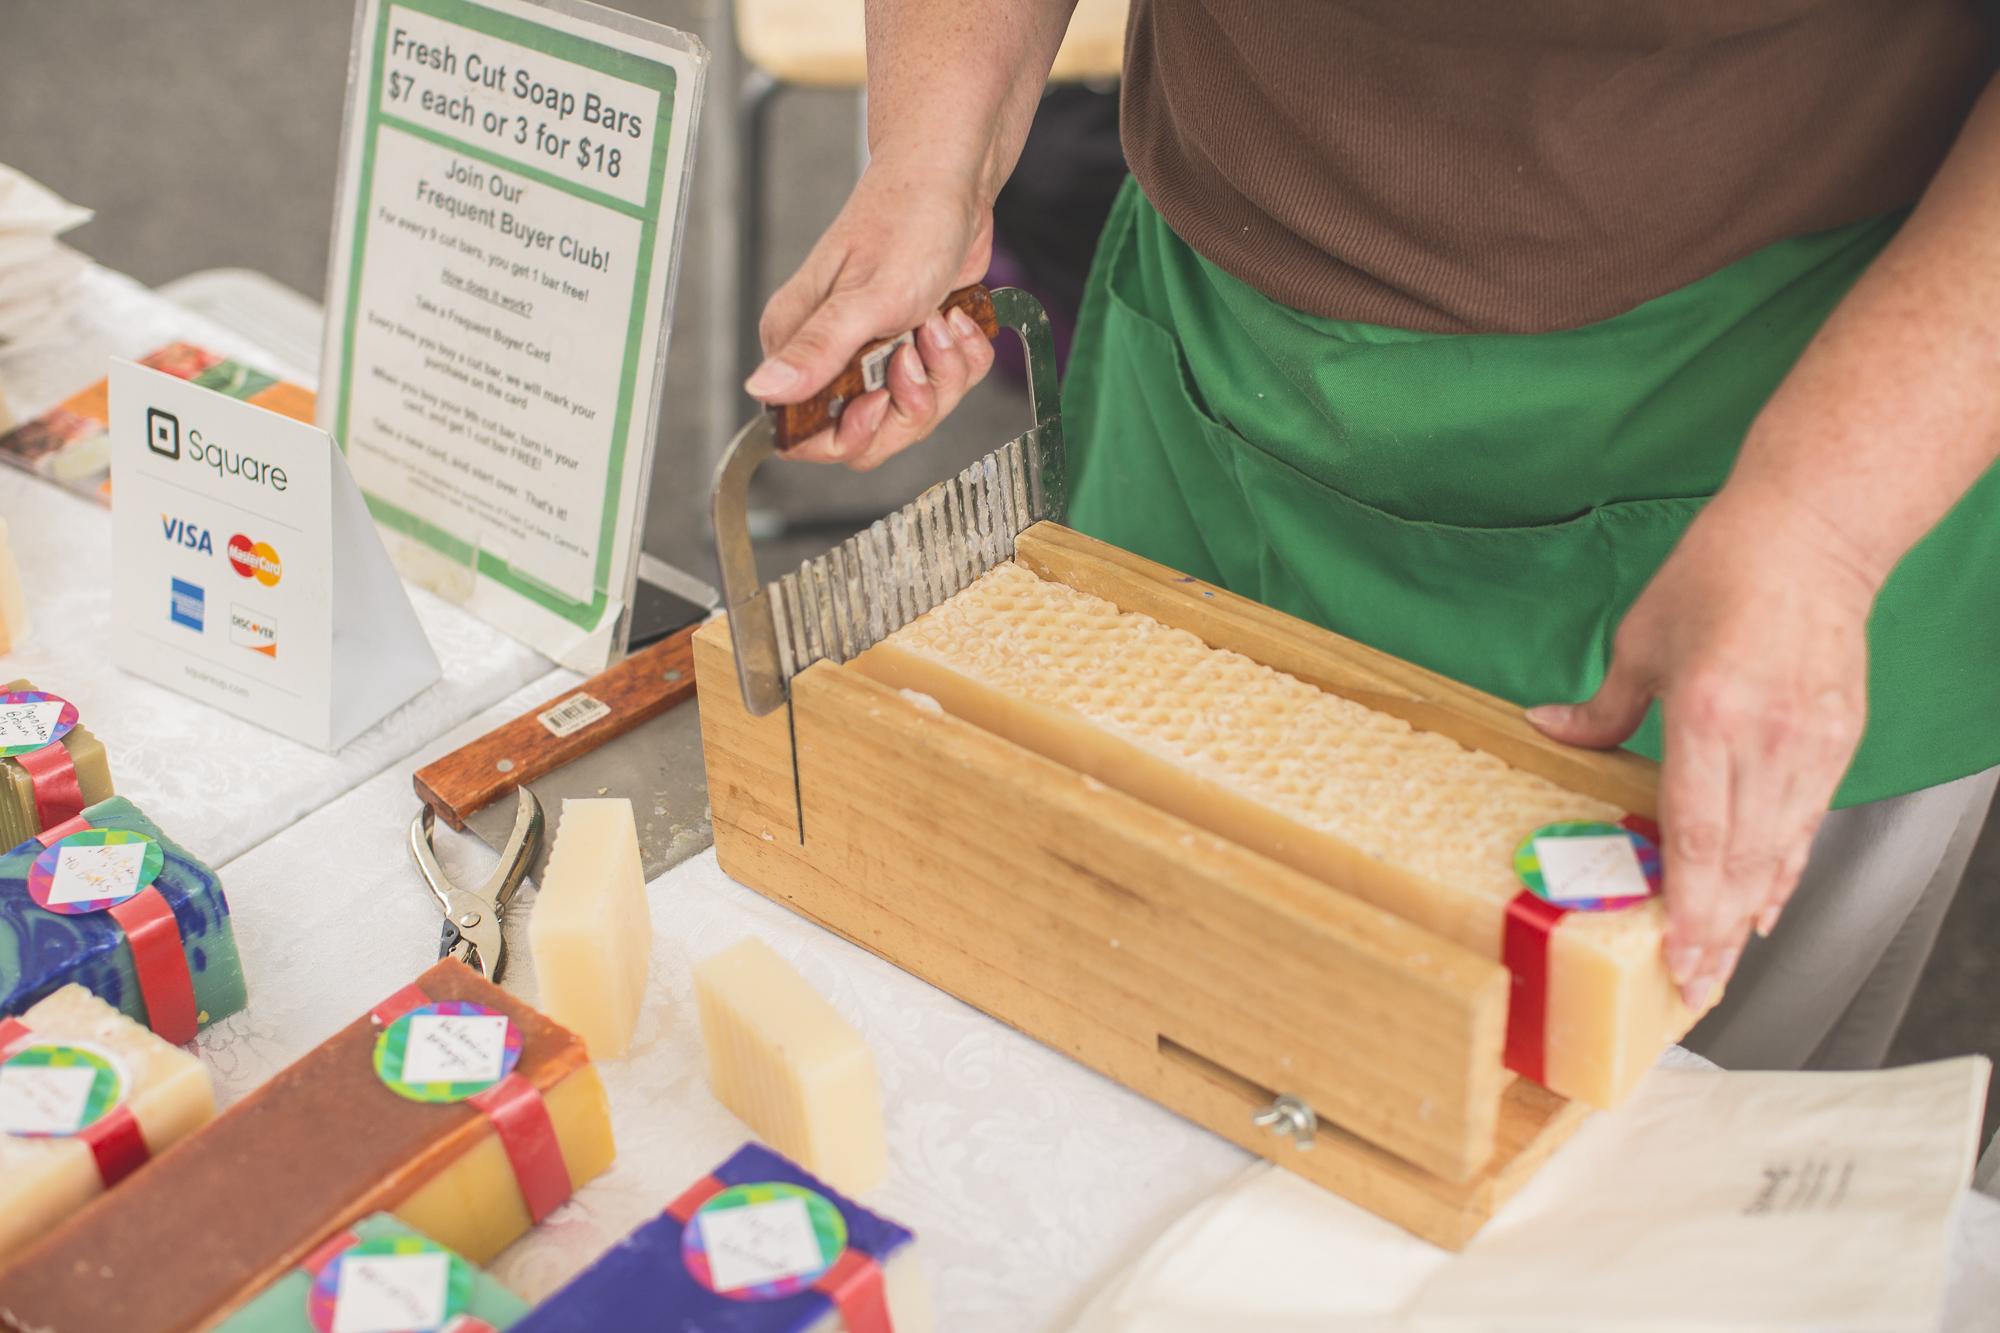 Once the soap is ready for market, it must be sliced into loaves and then cut into bars!